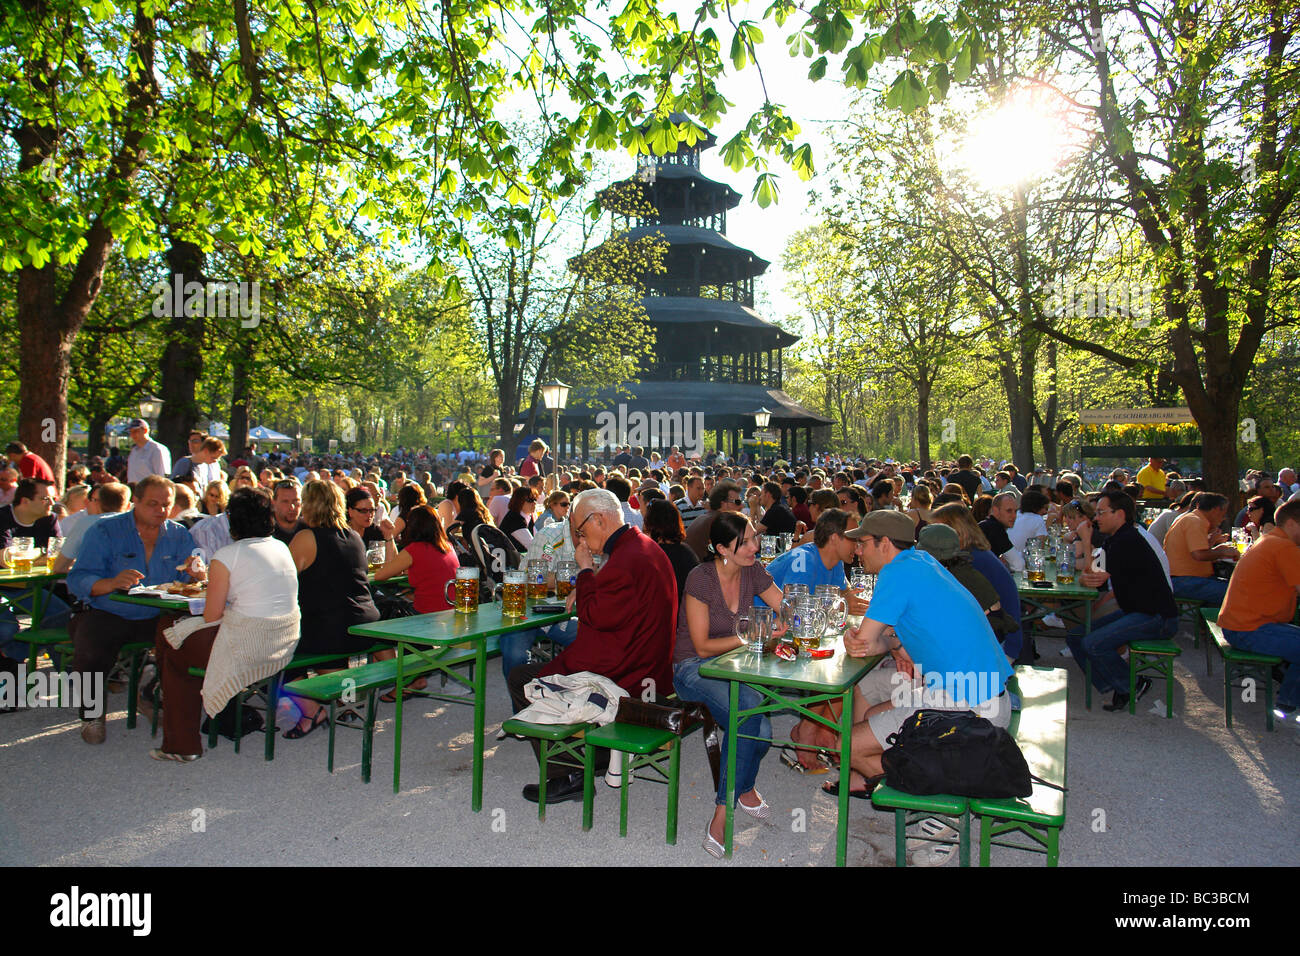 beer garden at chinese tower english garden munich germany stock photo royalty free image. Black Bedroom Furniture Sets. Home Design Ideas